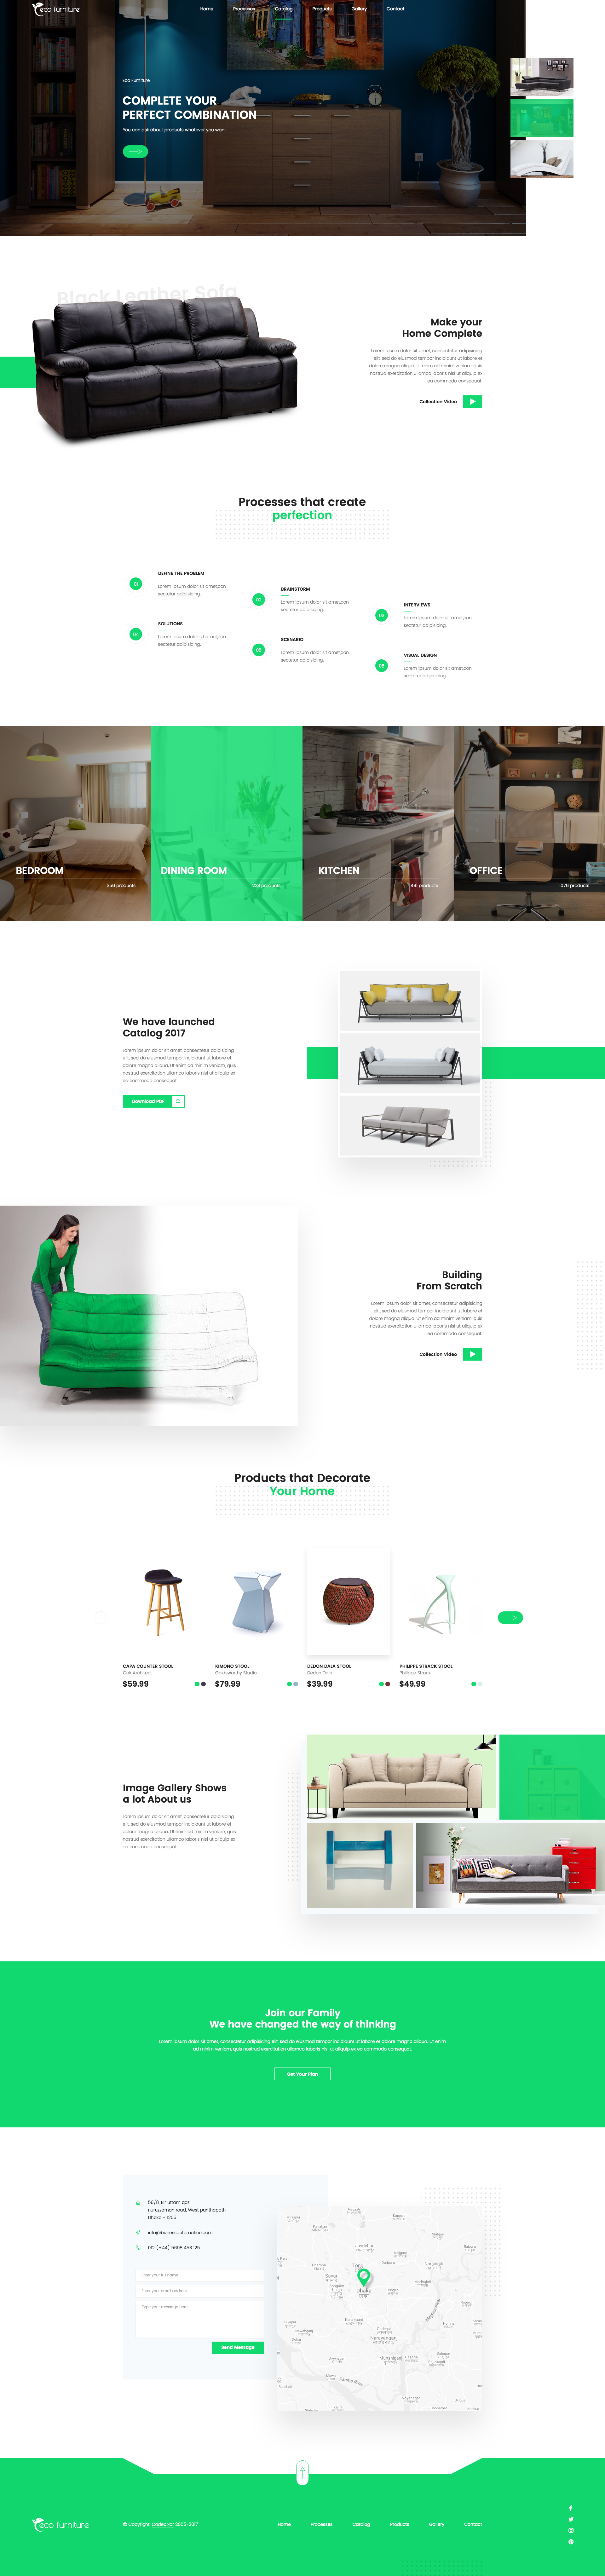 Eco Furniture Lead Generation Landing Page PSD Template By Uxseven - Lead generation website template